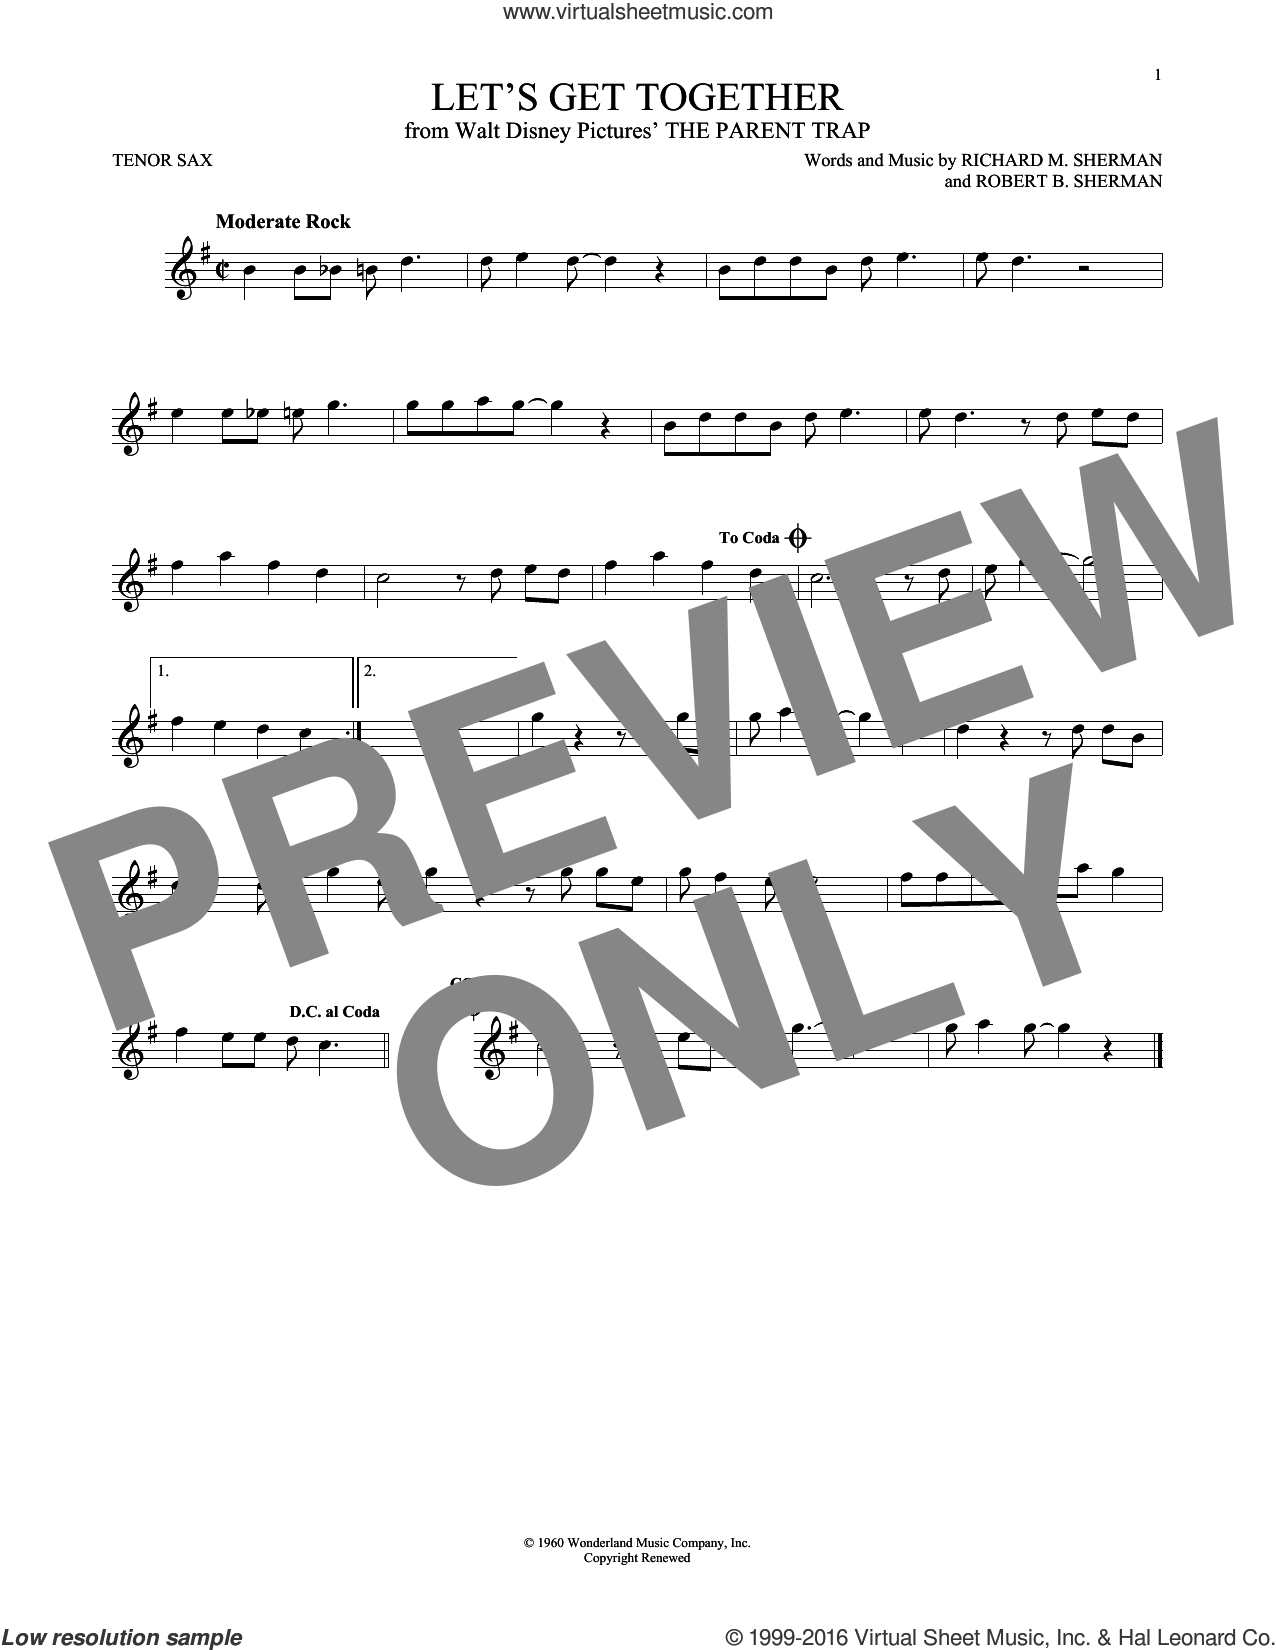 Let's Get Together sheet music for tenor saxophone solo by Hayley Mills, Richard M. Sherman and Robert B. Sherman, intermediate skill level